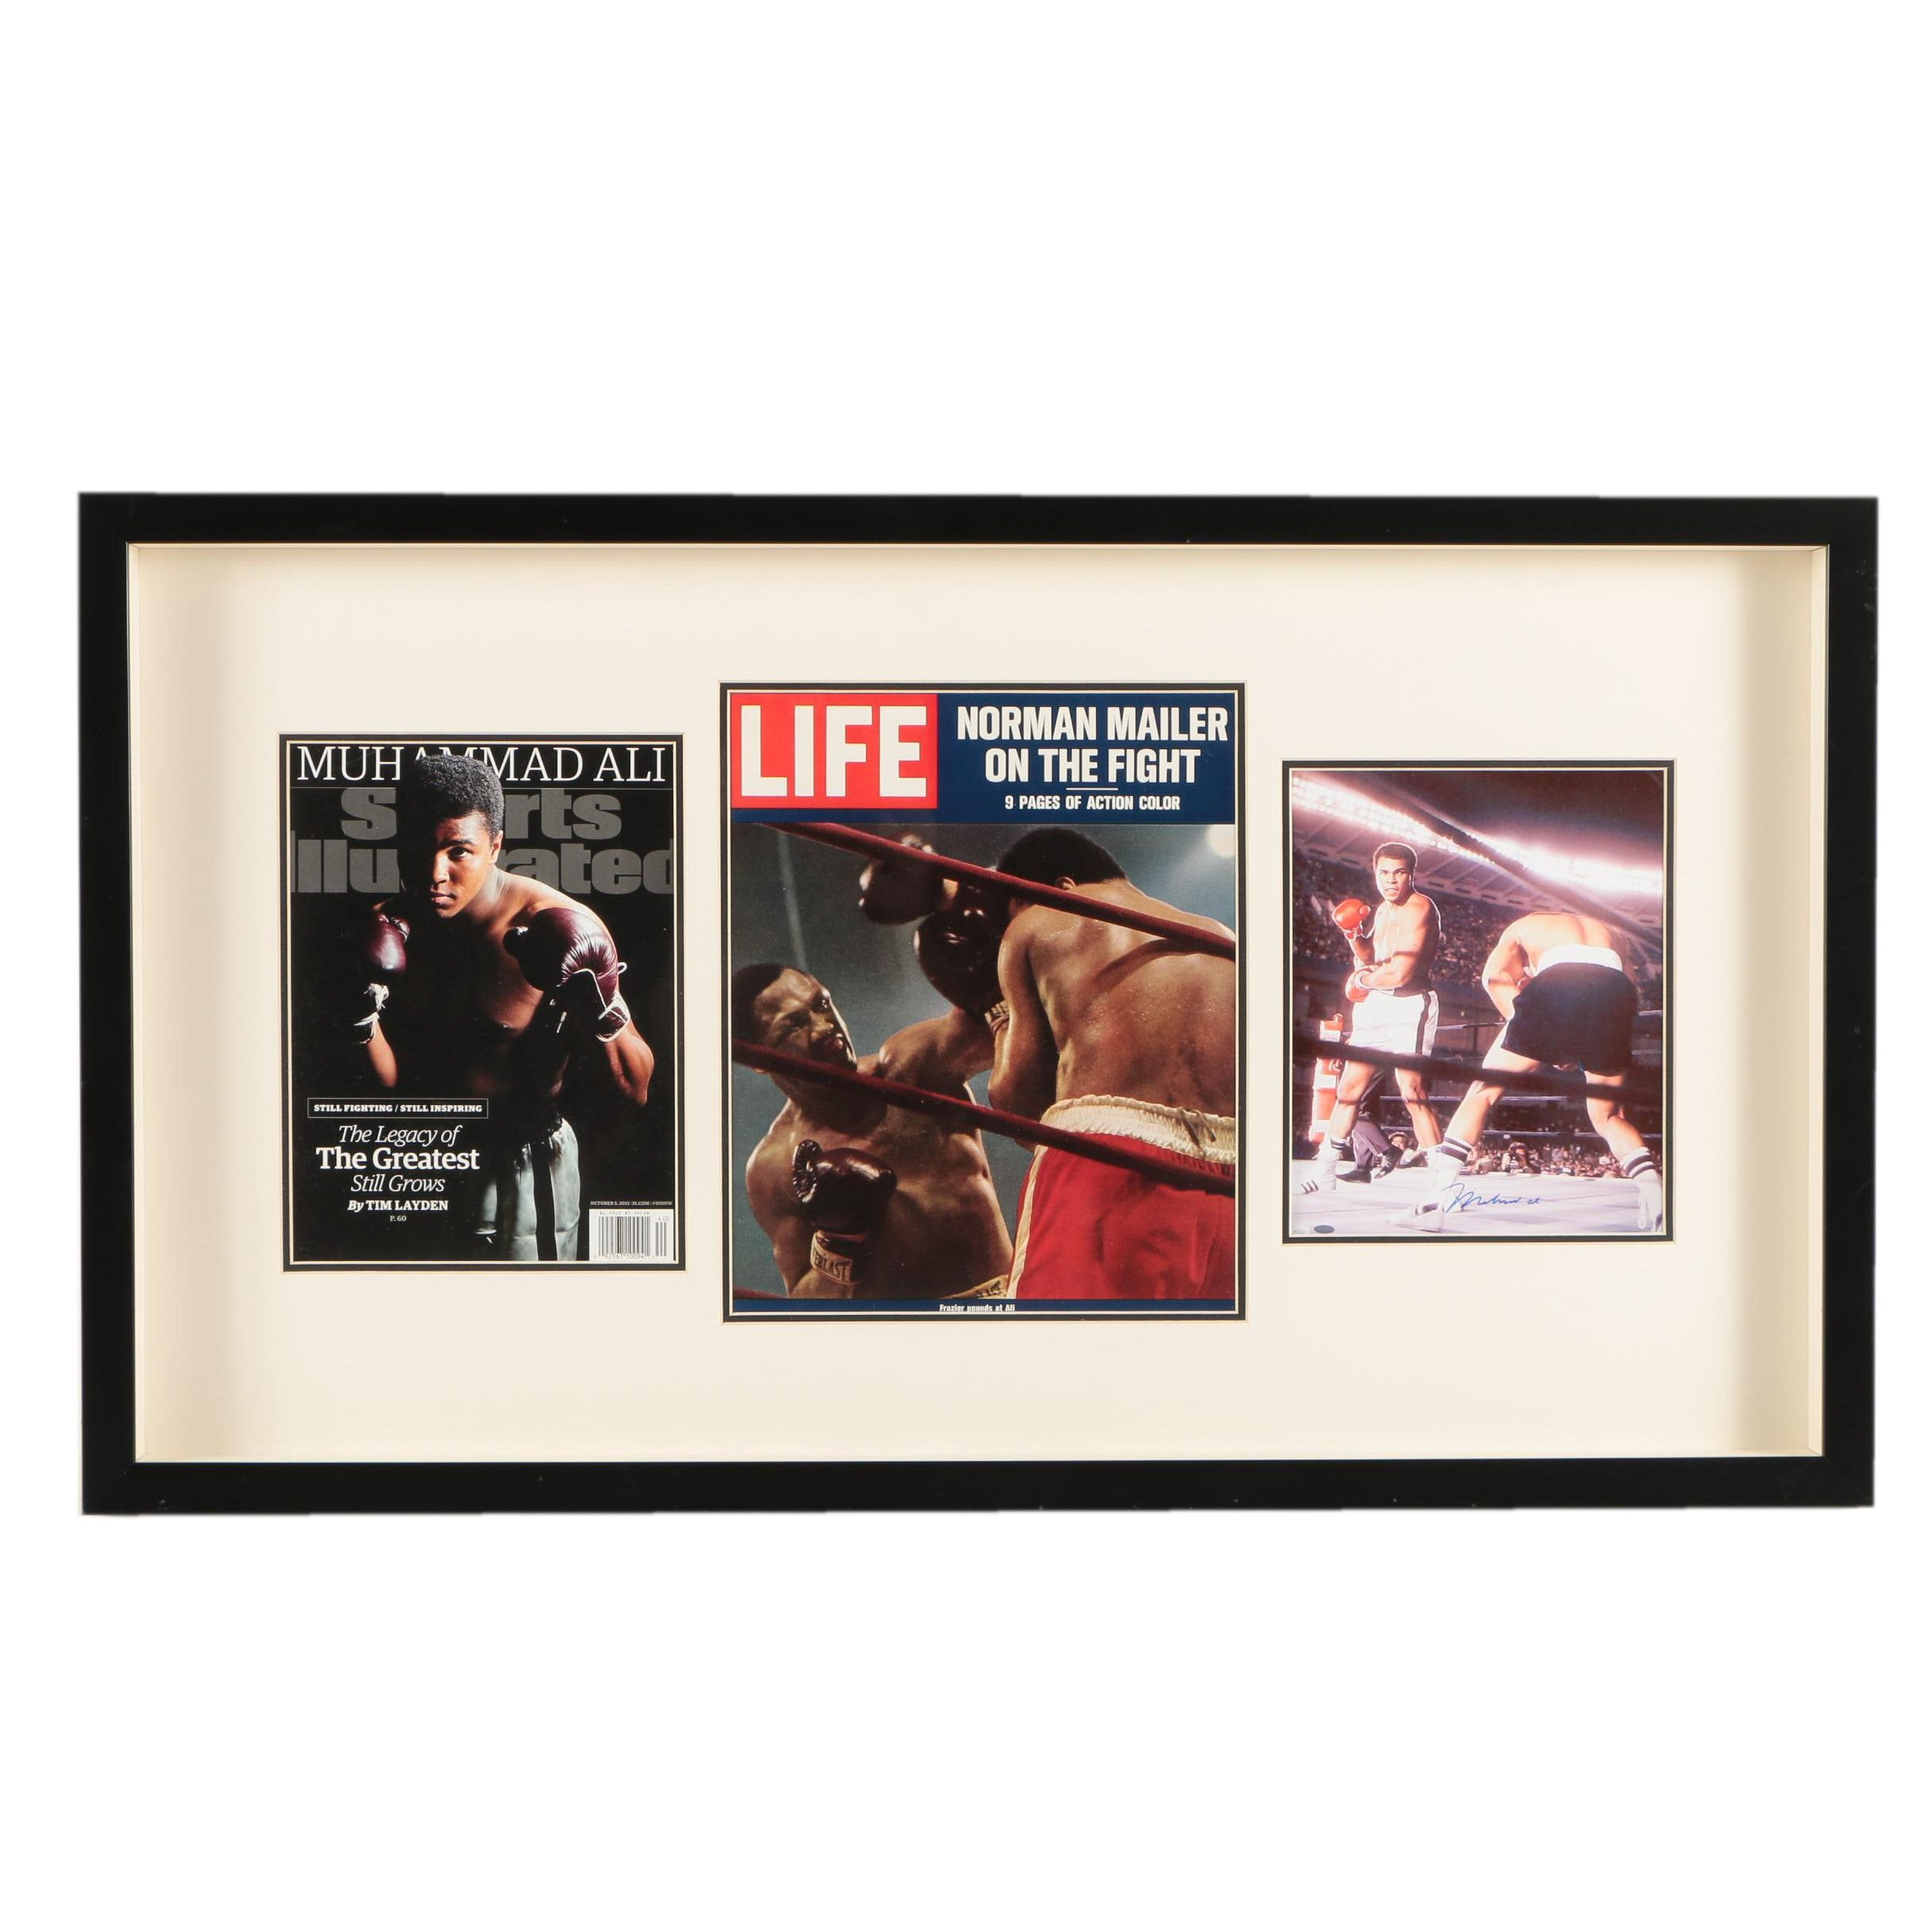 Muhammad Ali Magazine Covers and Reproduction Photograph